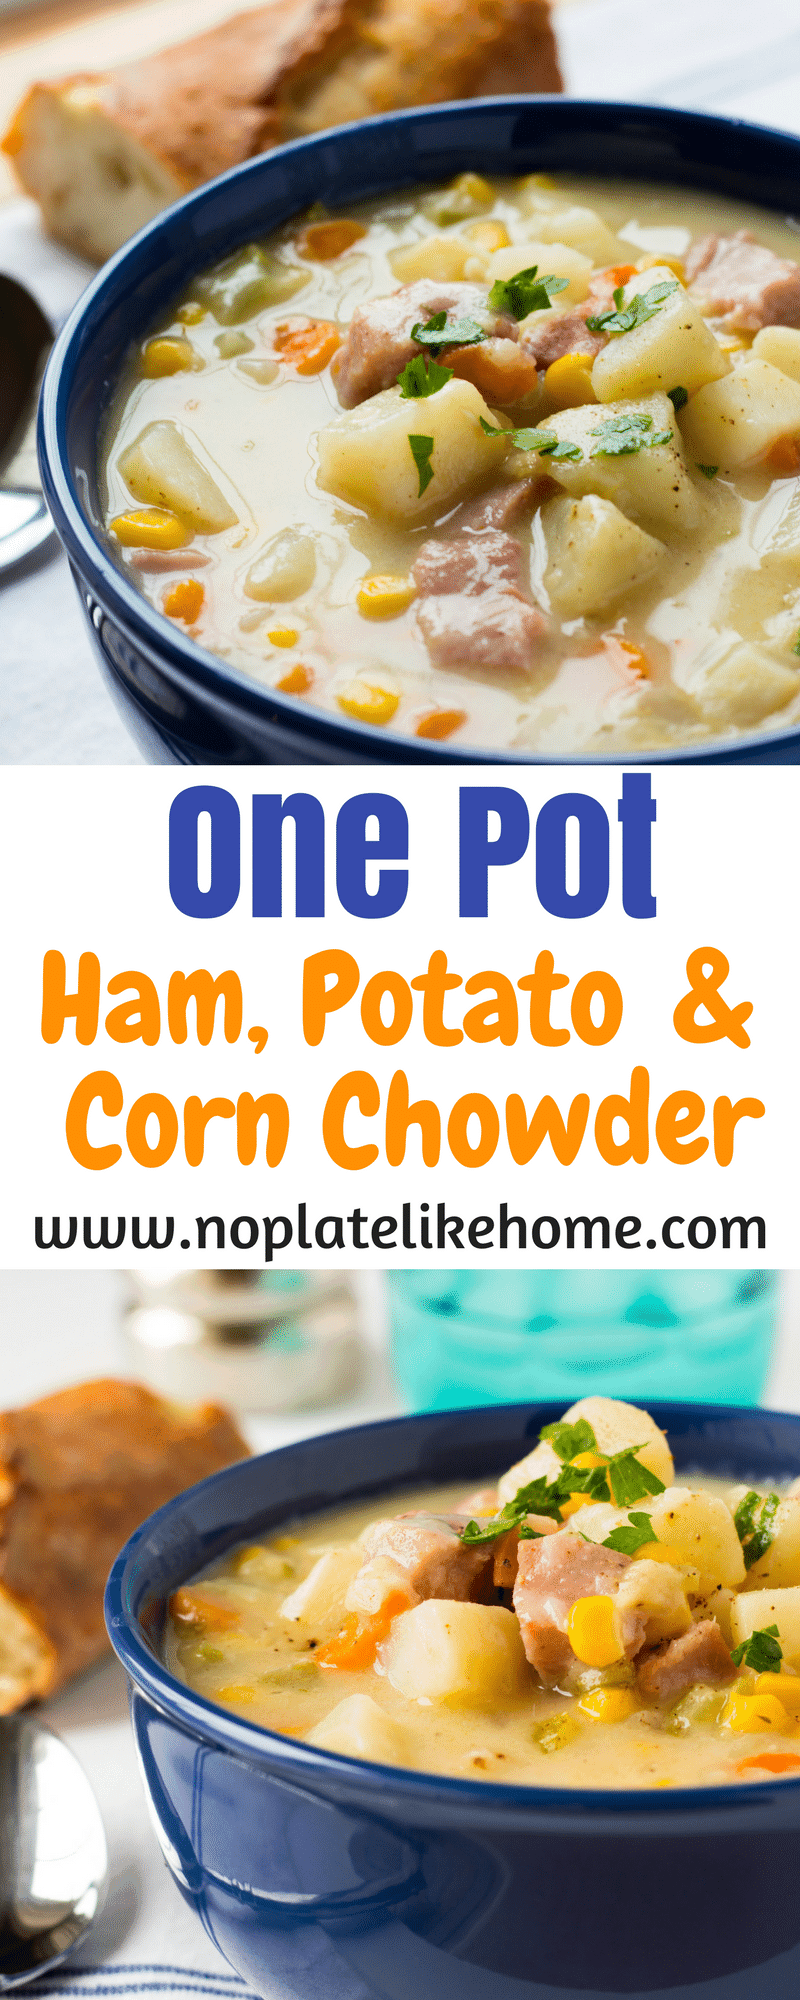 One Pot Ham, Potato and Corn Chowder is the perfect comfort food for rainy, cold days.